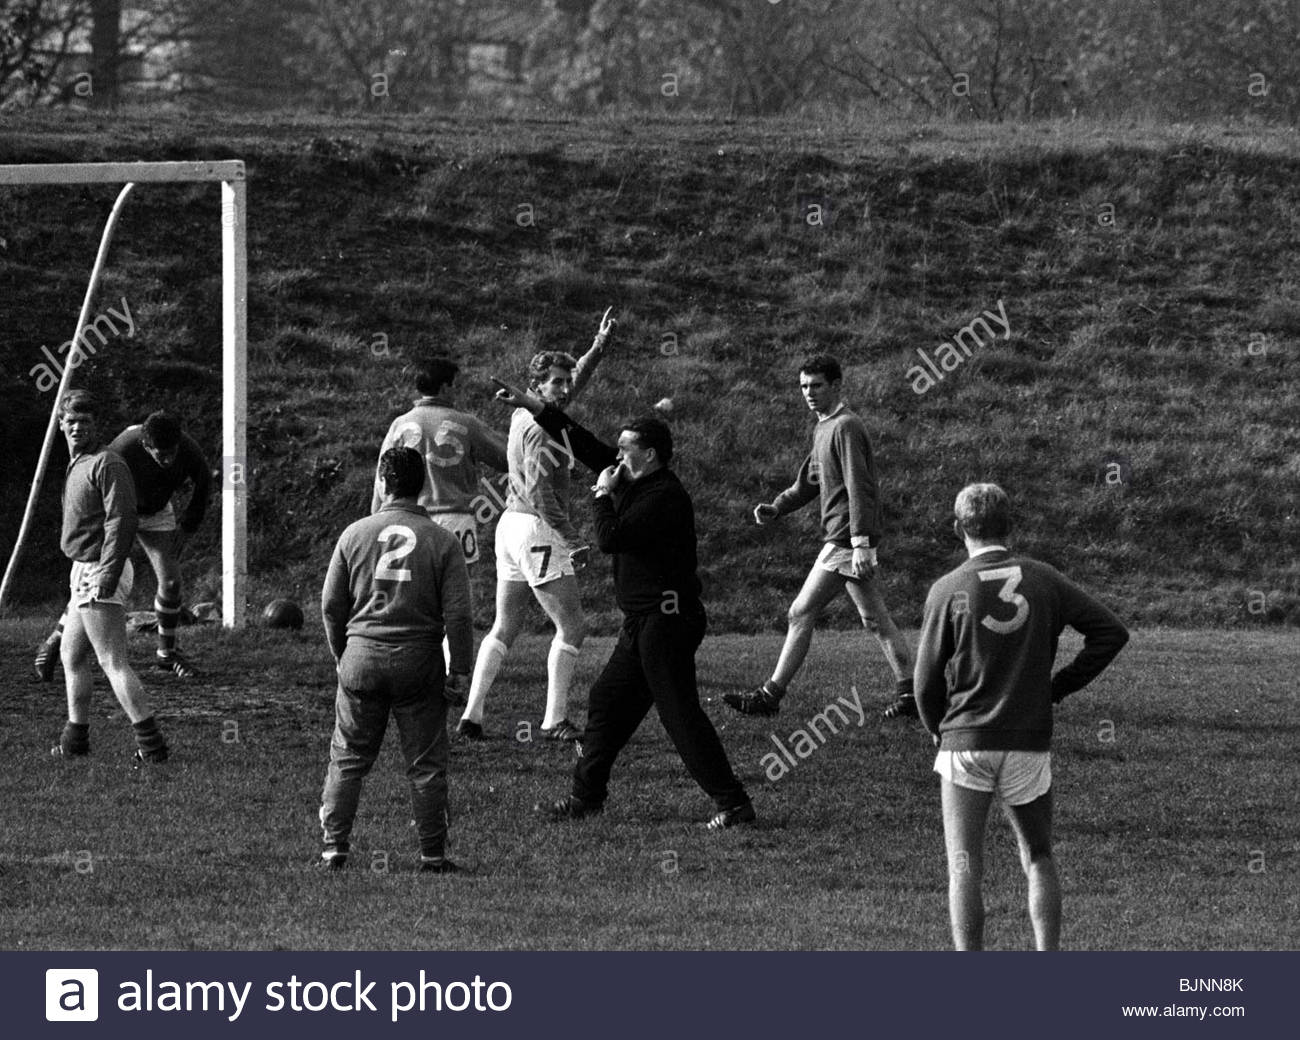 SEASON 1965/1966 CELTIC Manager Jock Stein (centre) calls the shots at Barrowfield training - Stock Image